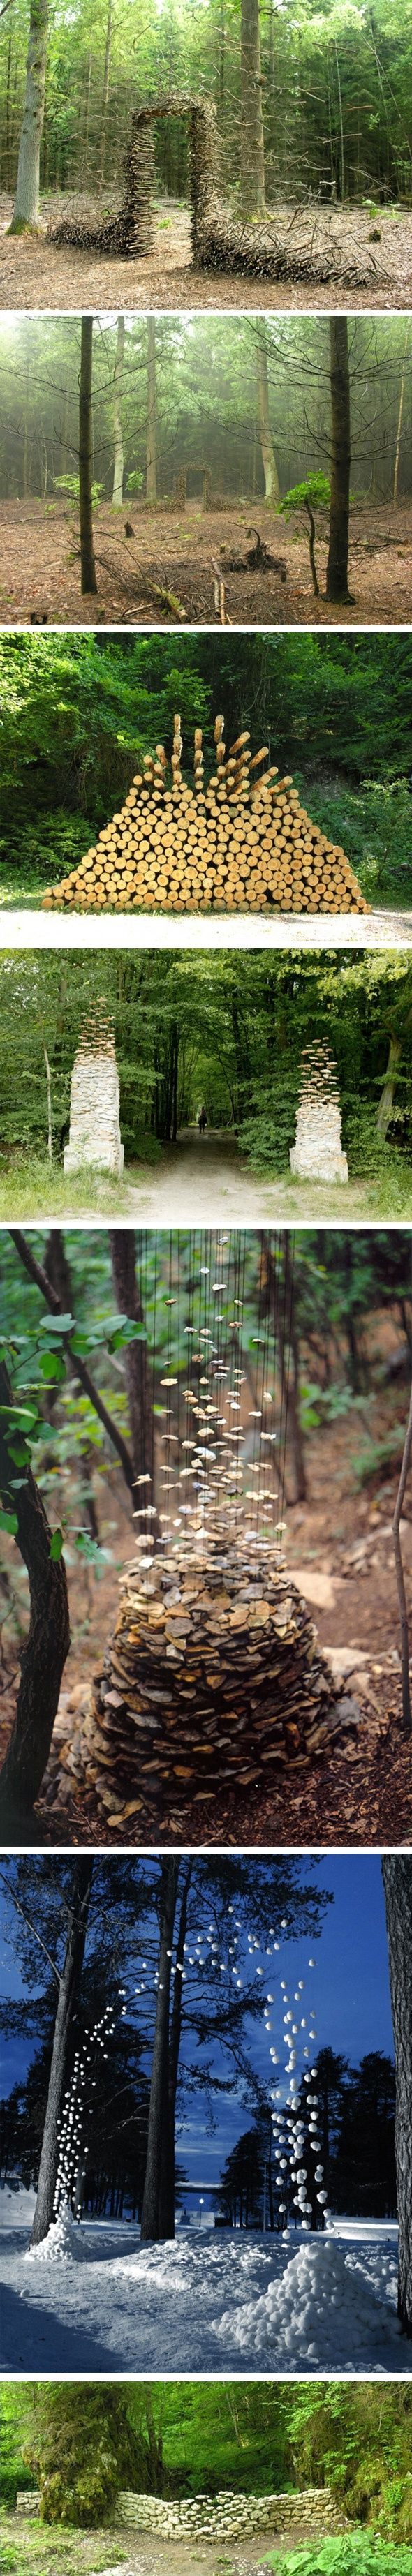 The German artist Cornelia Konrads creates hallucinating in situ installations in public spaces, parks and private gardens throughout the world. His work is often punctuated by the illusion of weightlessness, when stacked objects (branch, log, stone) seem to be hanging in the air, increasing the temporary nature of the facility.